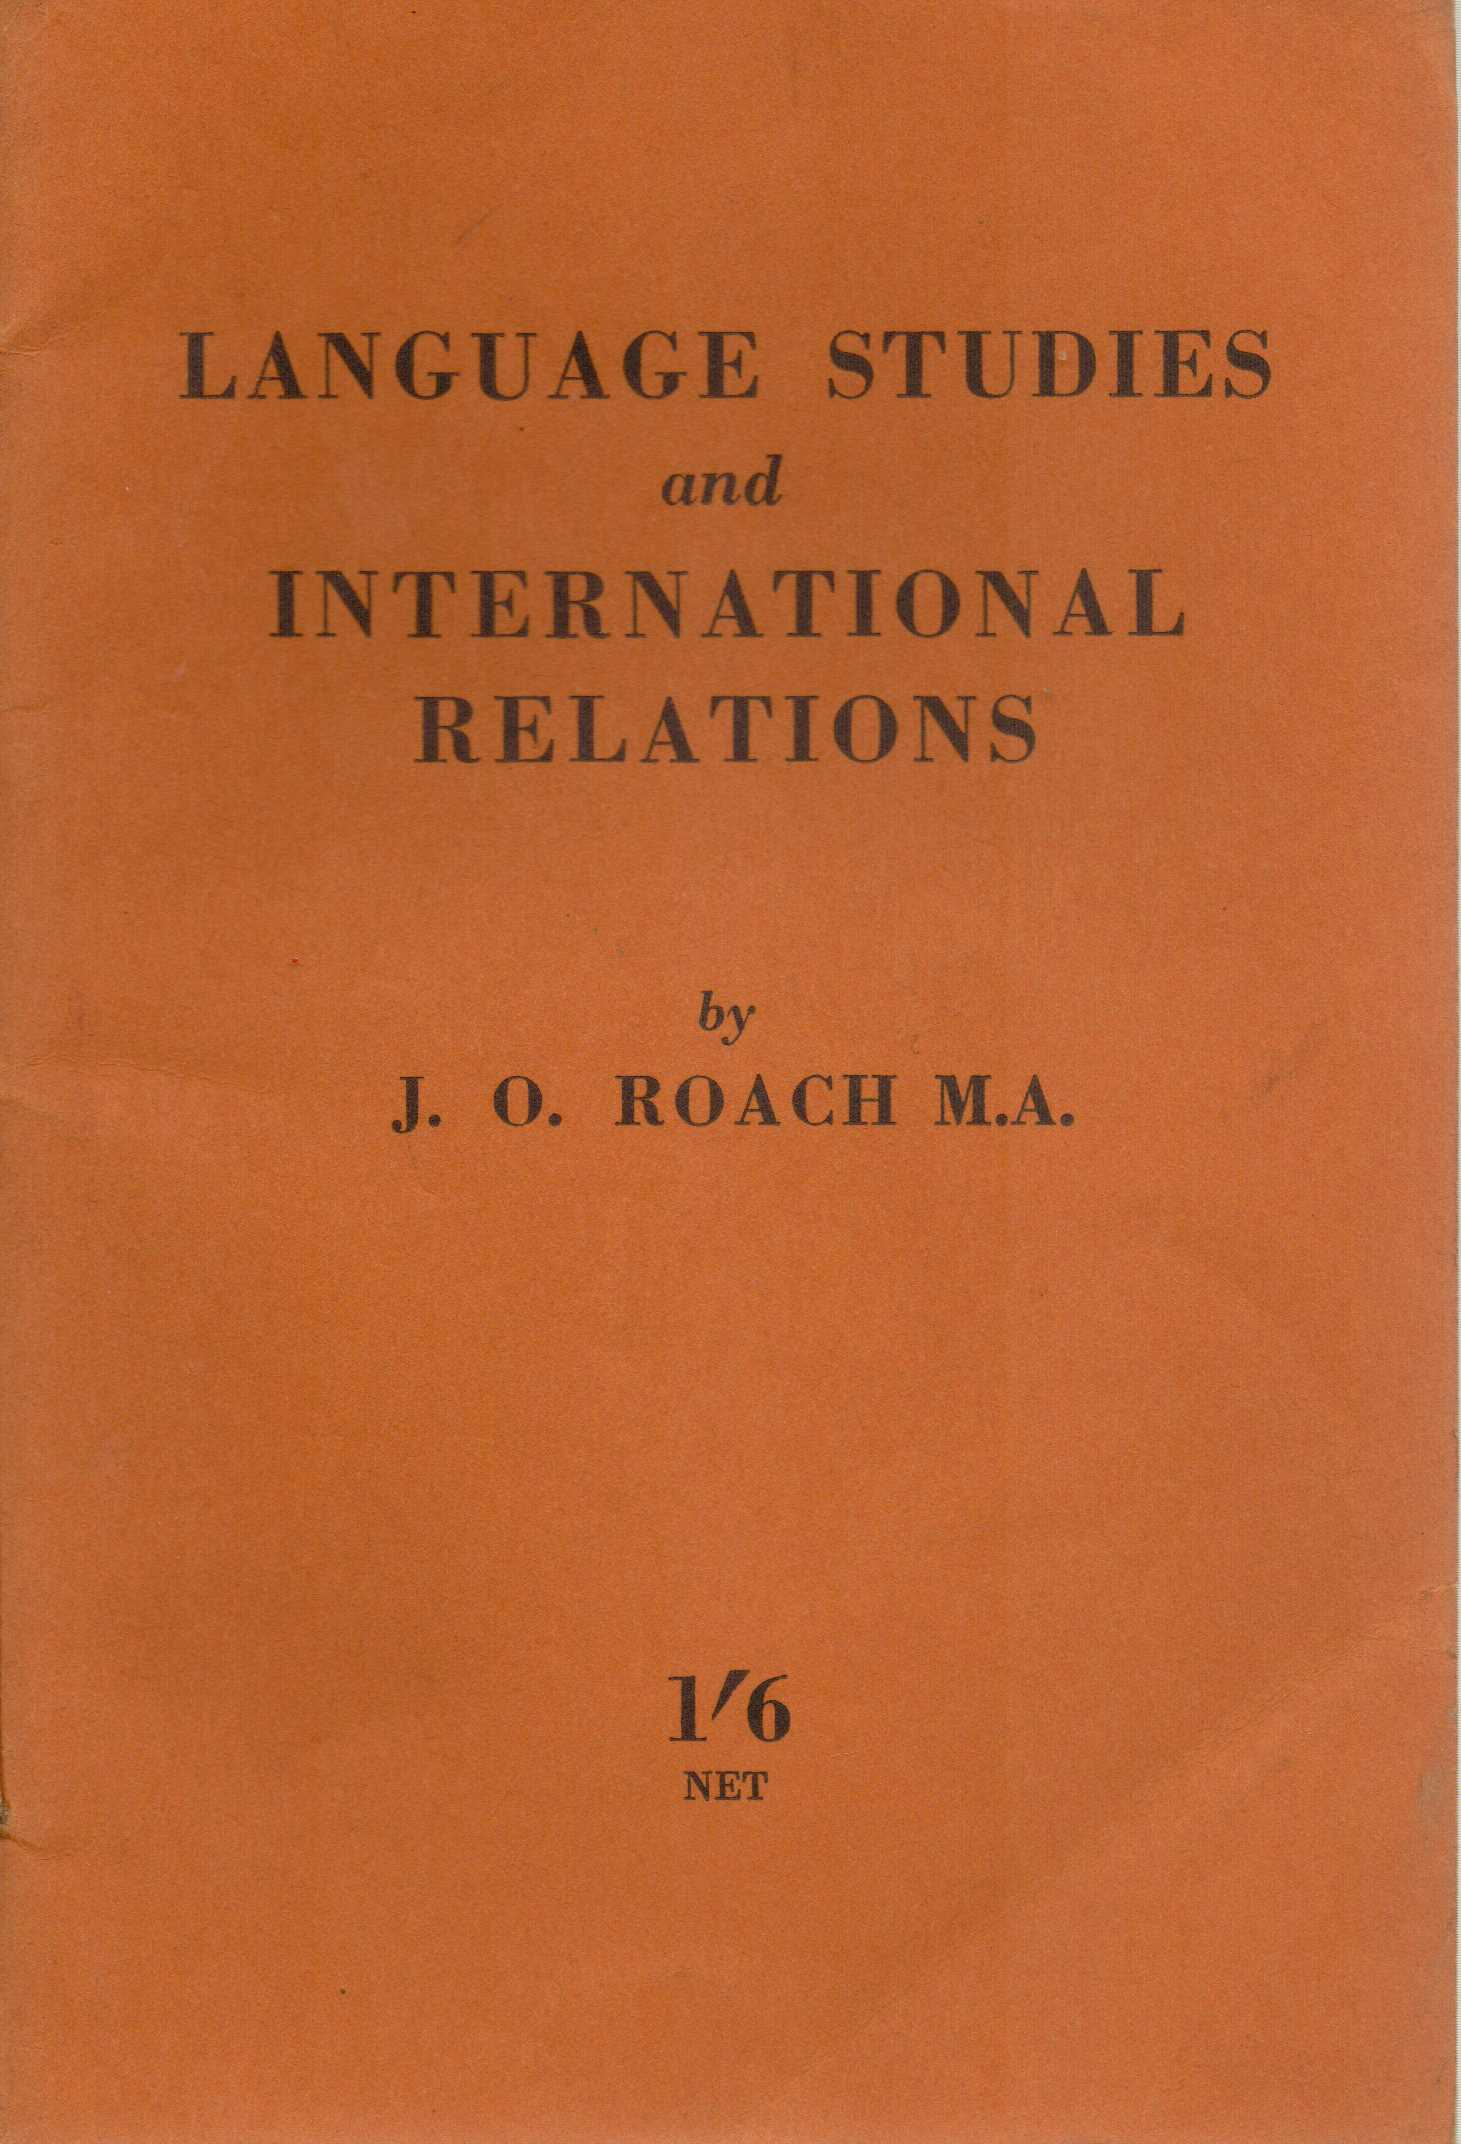 Image for Language Studies and International Relations